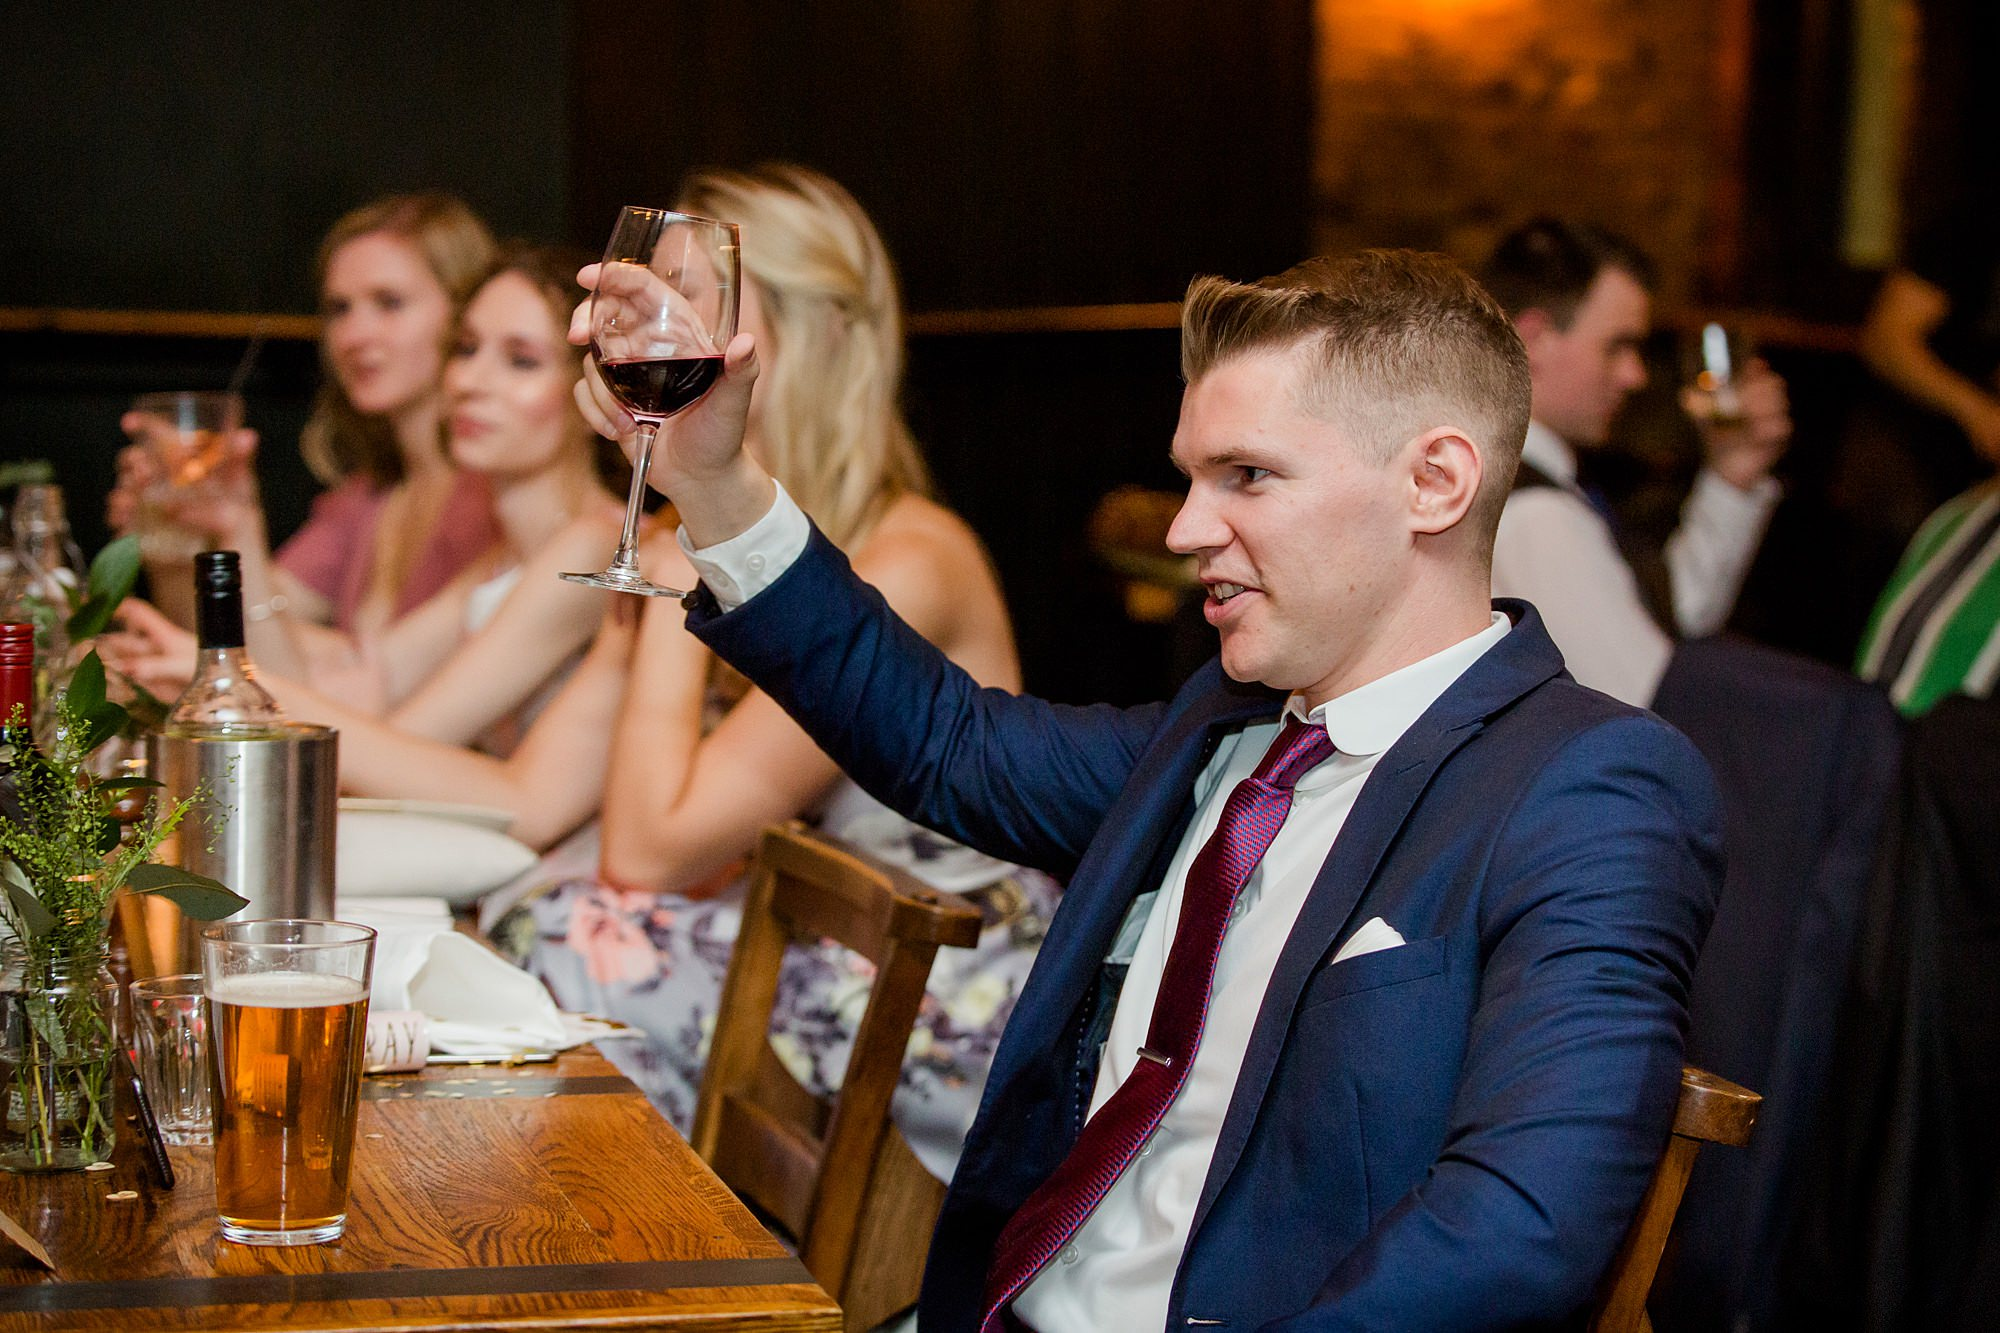 Harrild and sons wedding guests toast during speeches